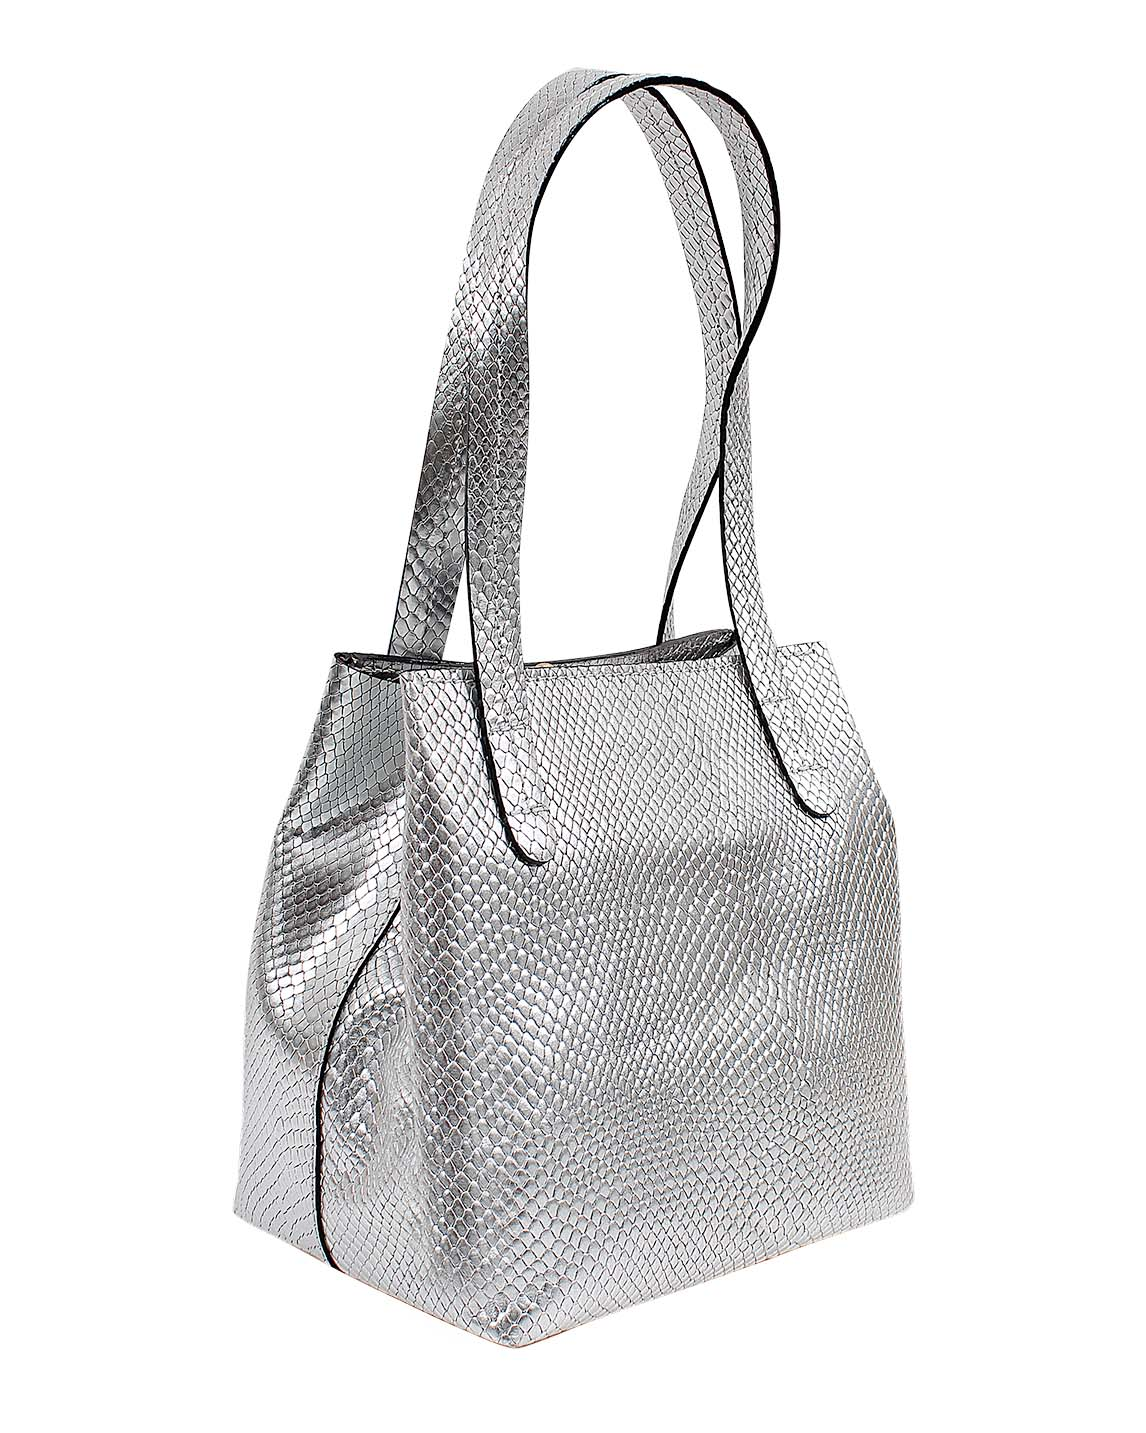 Cartera Tote Bag DS-3231 Color Plata